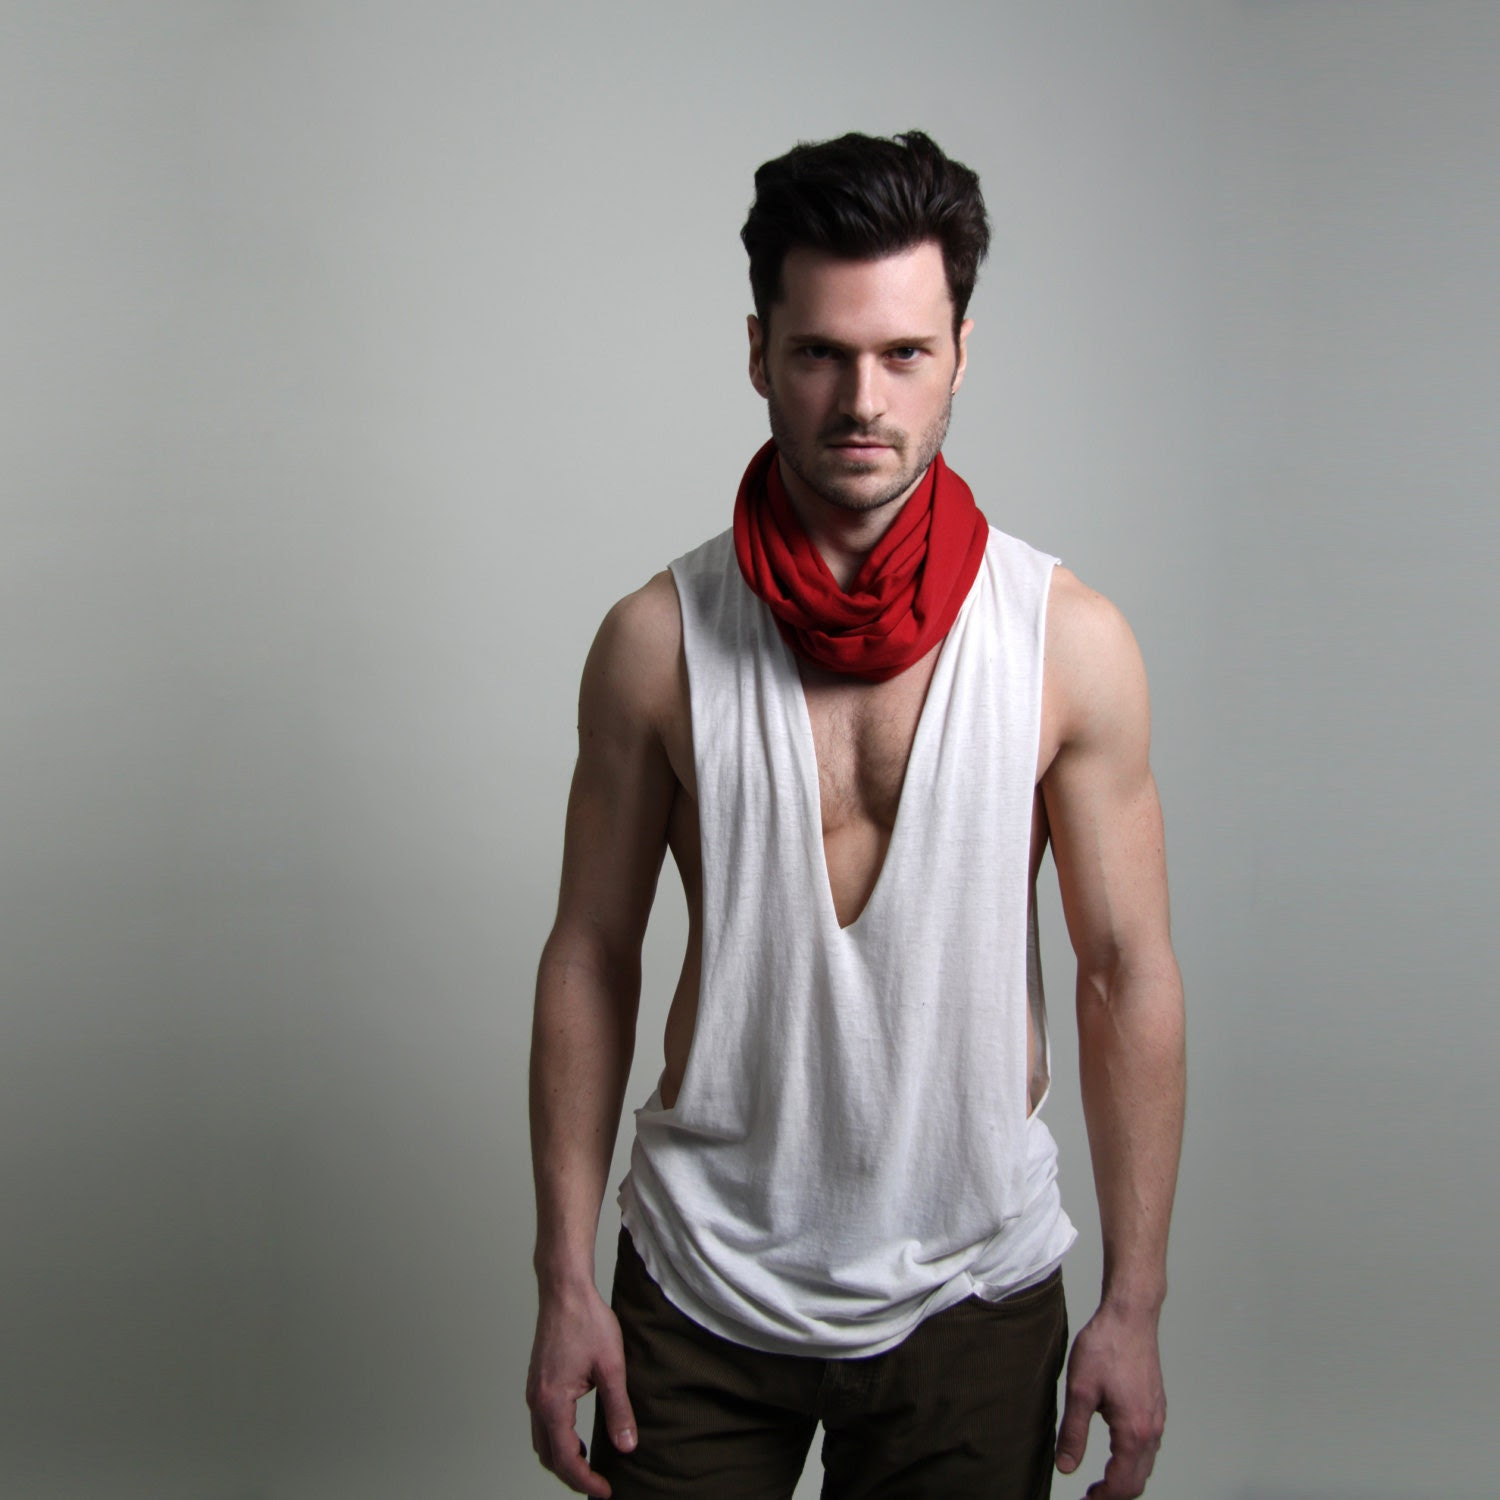 Burning Man Circle Scarf - Deep Red - Mens Women - Infinity Scarf Loop Scarf - Cotton Spring Unique - Necklush